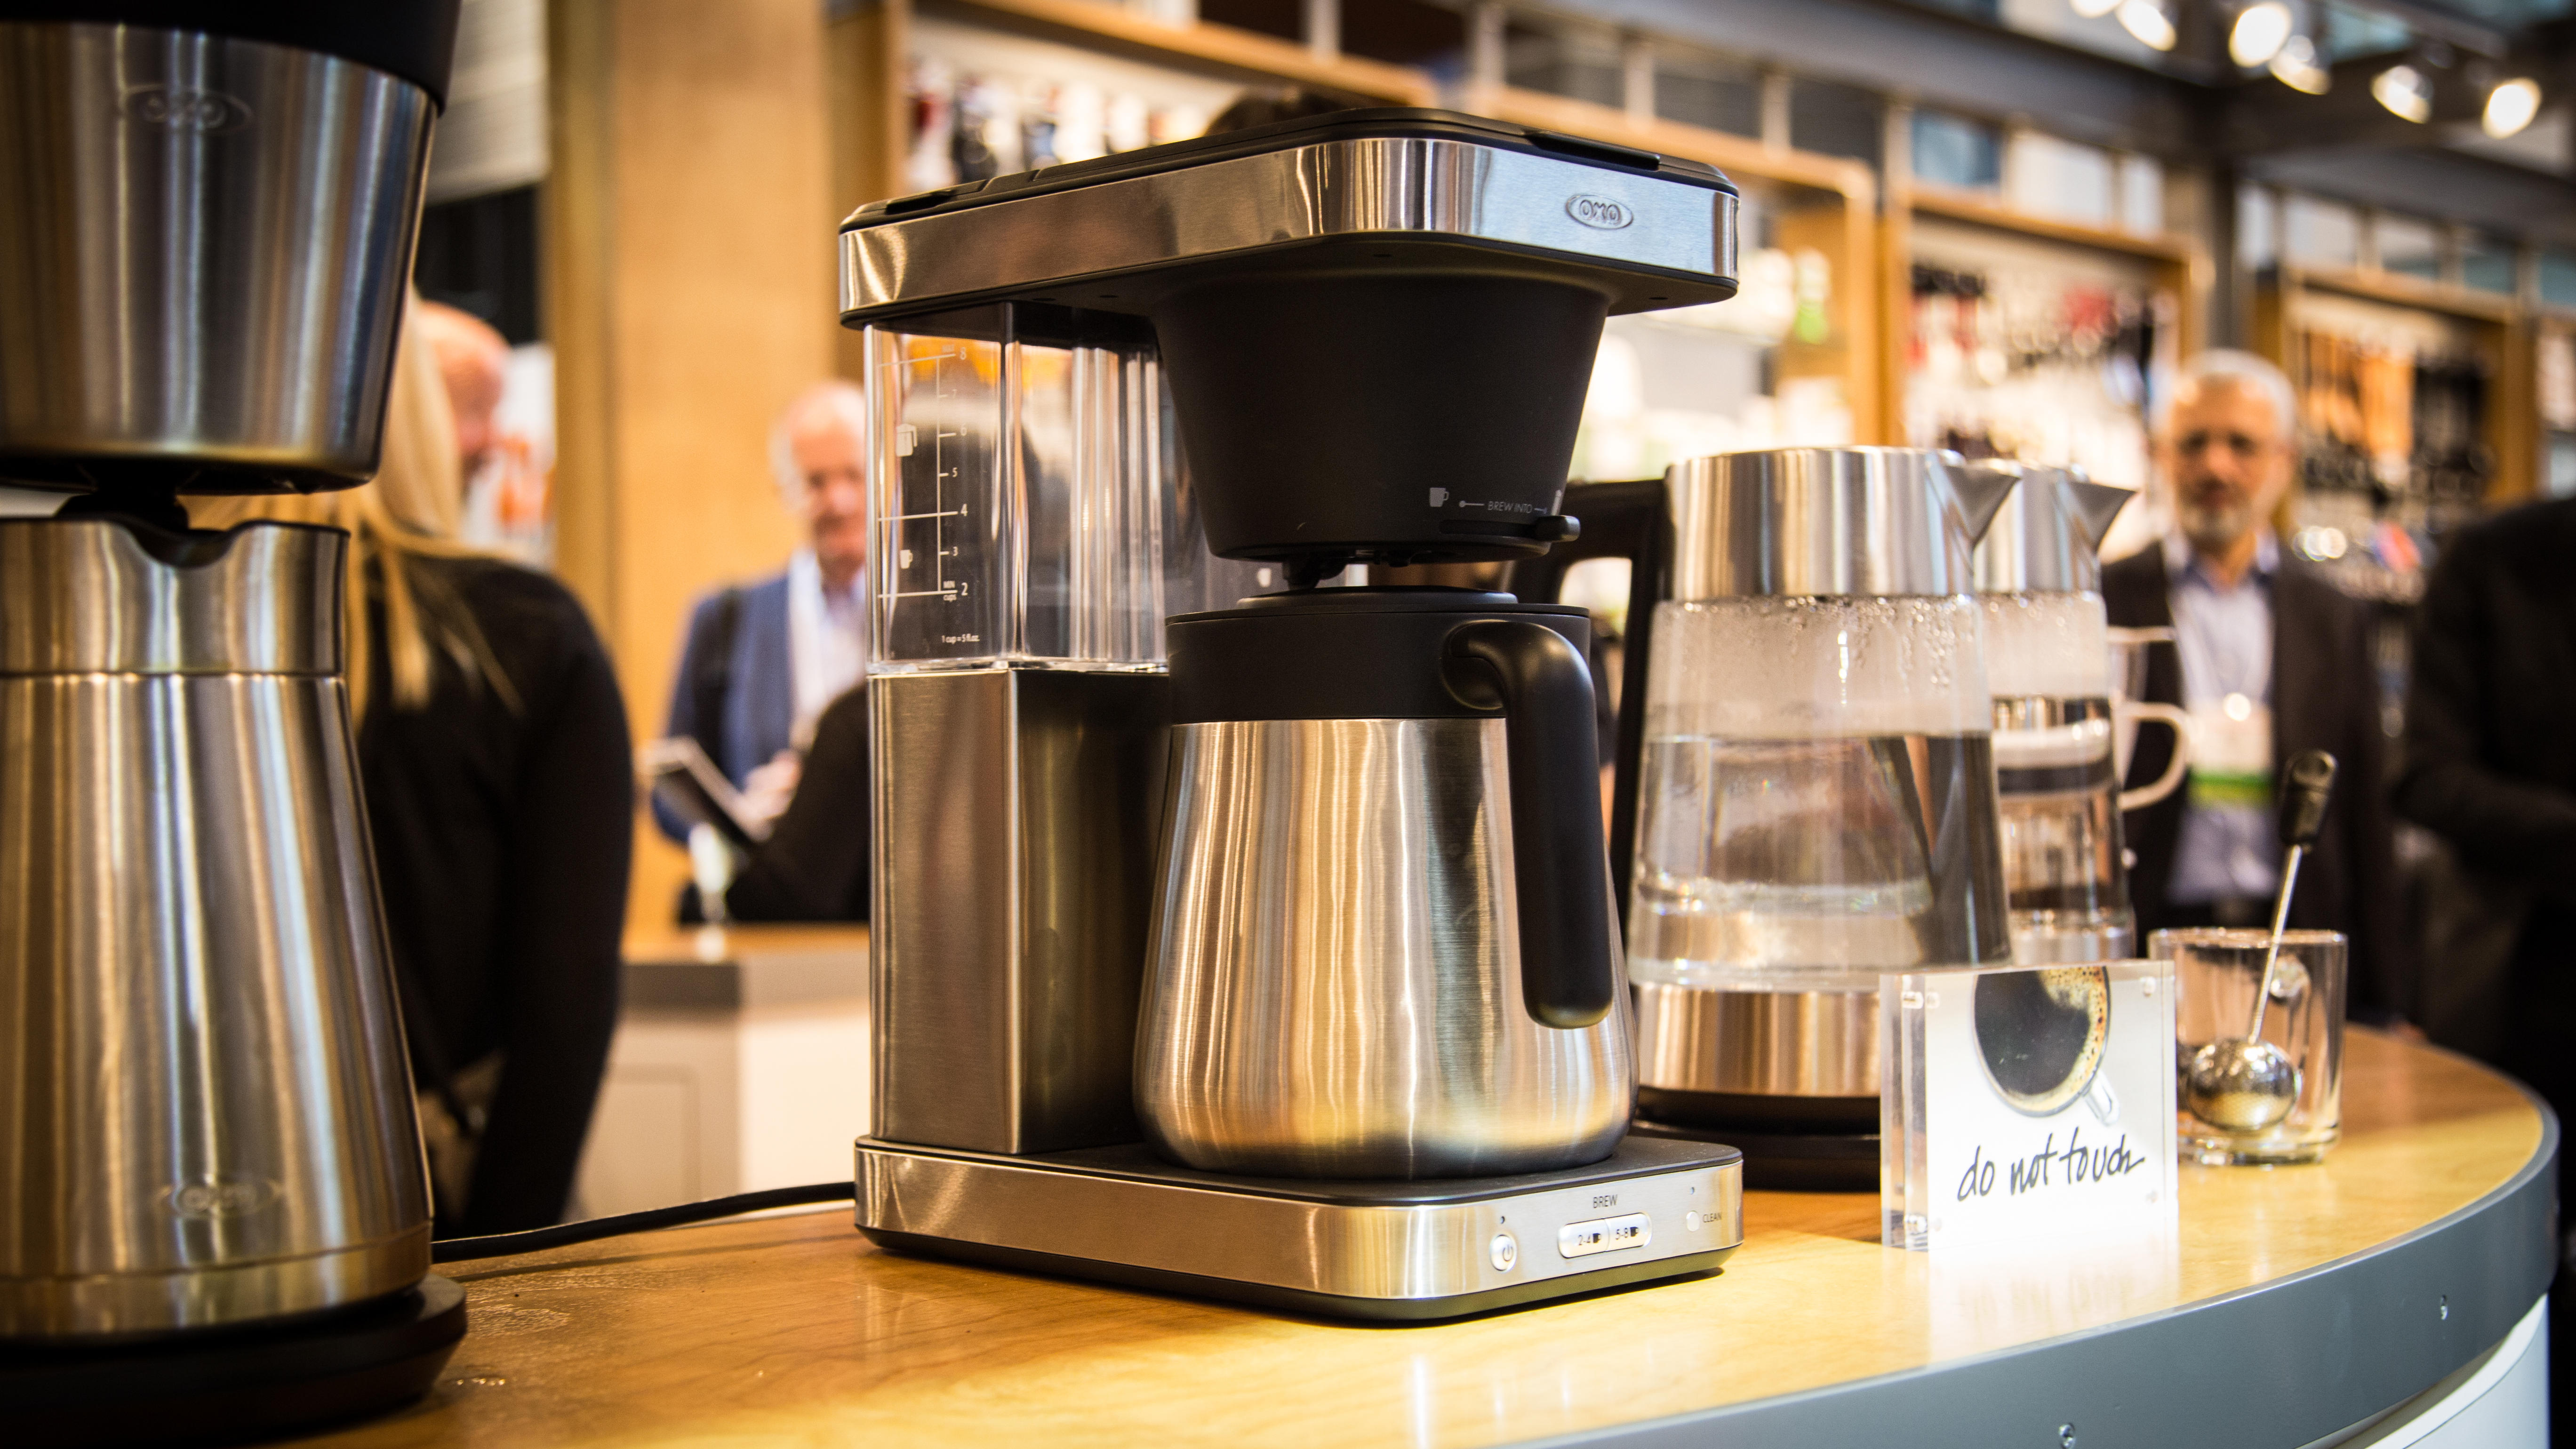 Oxo's two new coffee makers; one brews hot, the other cold